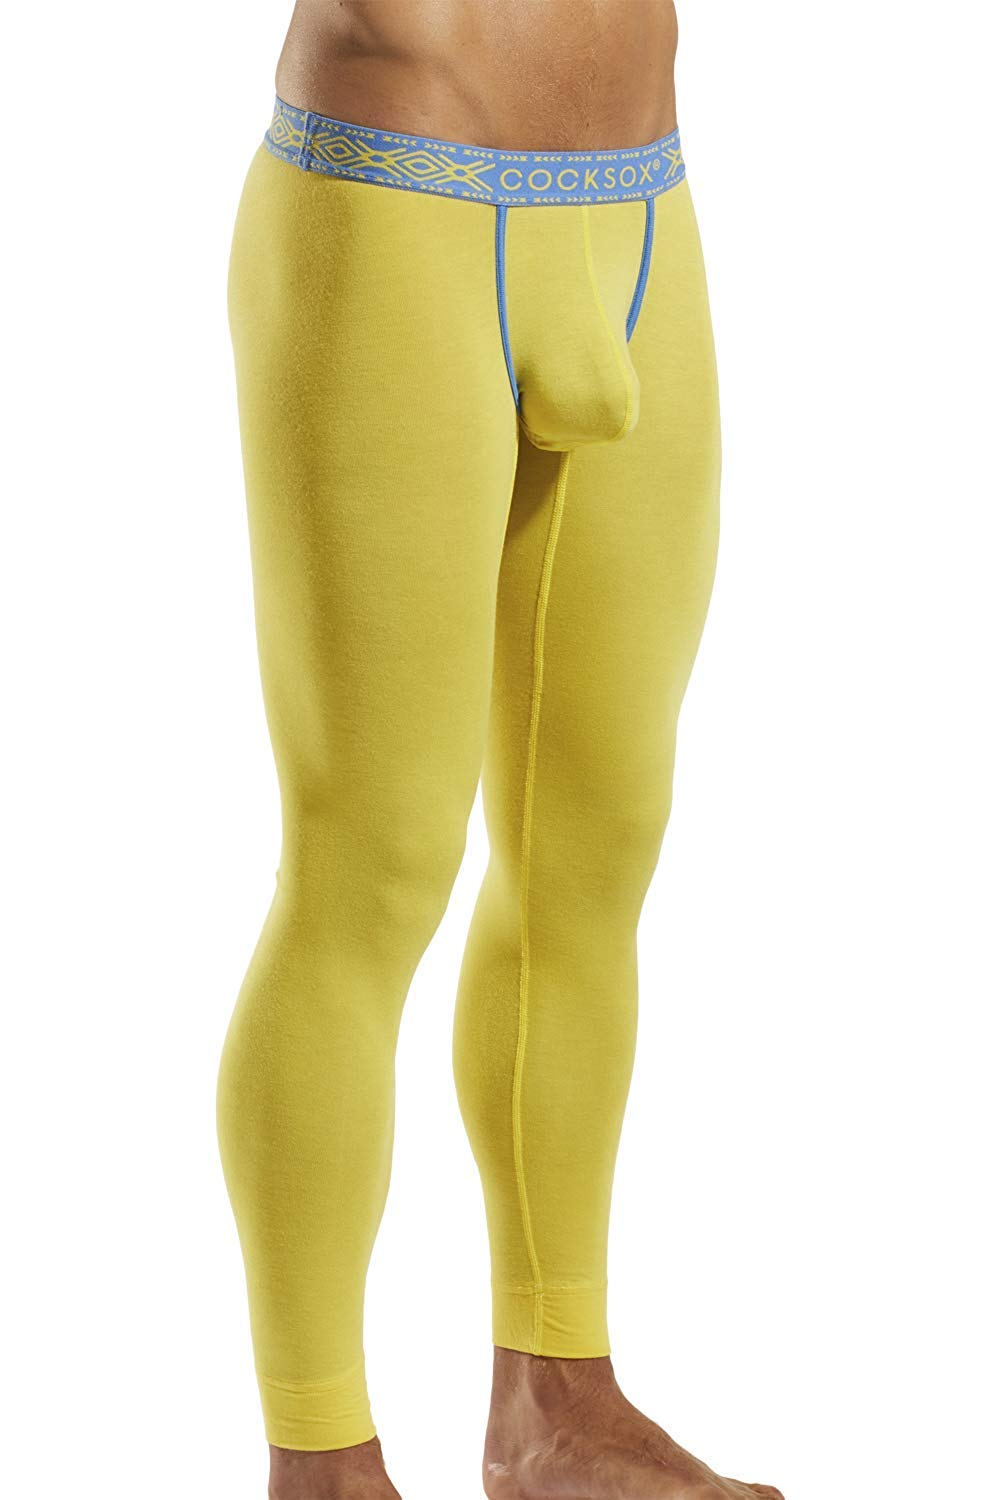 Cocksox Anatomical Support Pouch Long John CX92NG (X-Large, Woad) by Cocksox